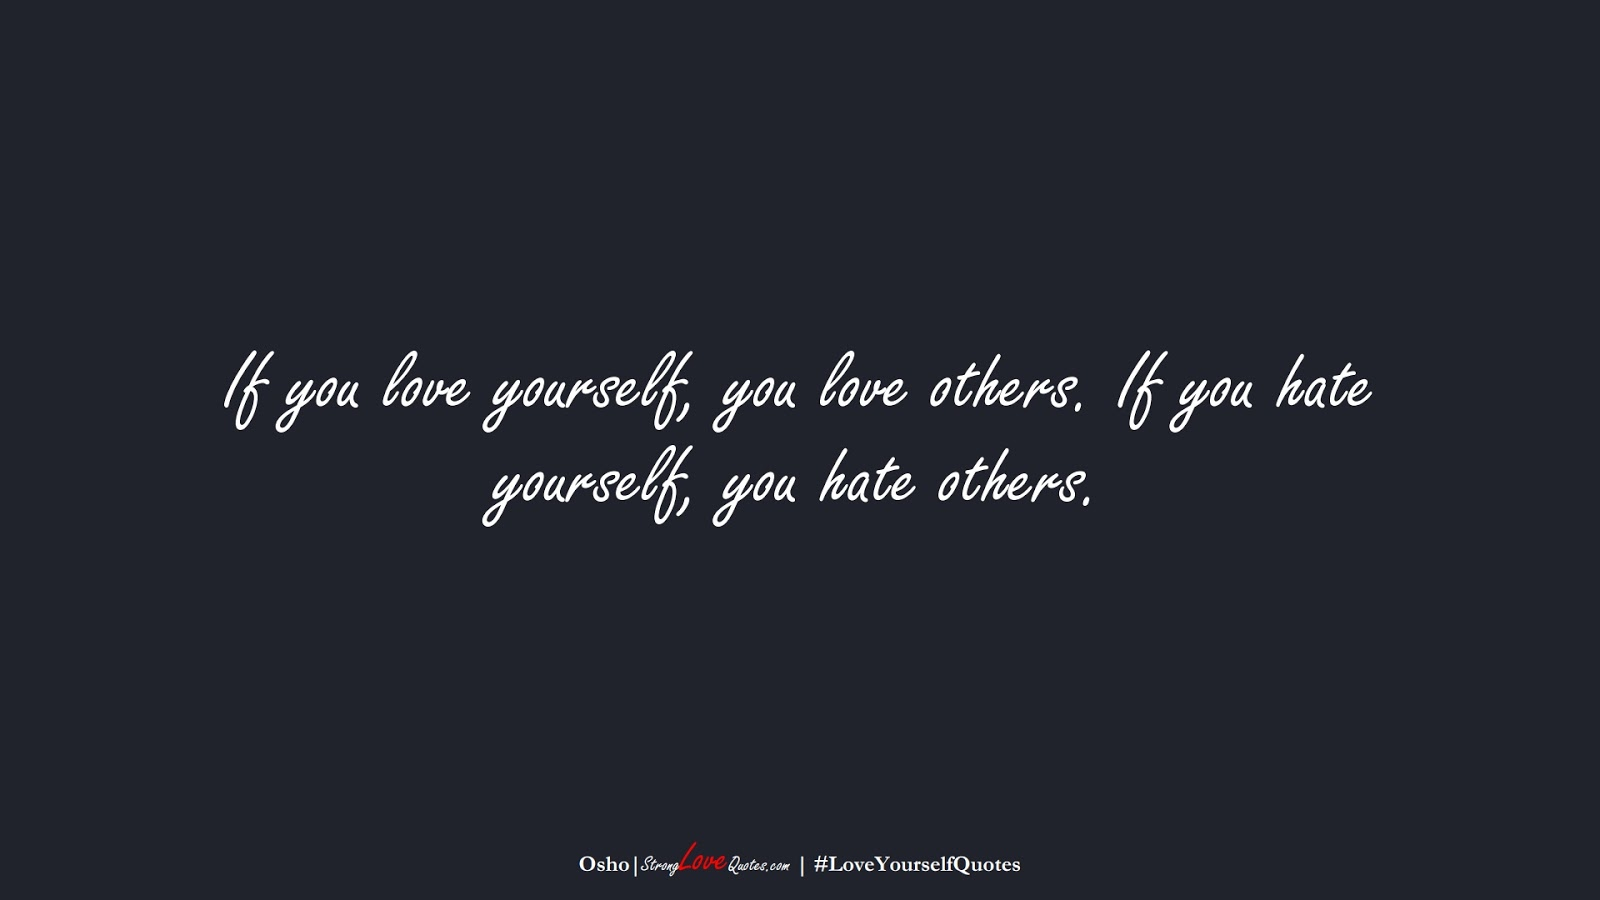 If you love yourself, you love others. If you hate yourself, you hate others. (Osho);  #LoveYourselfQuotes